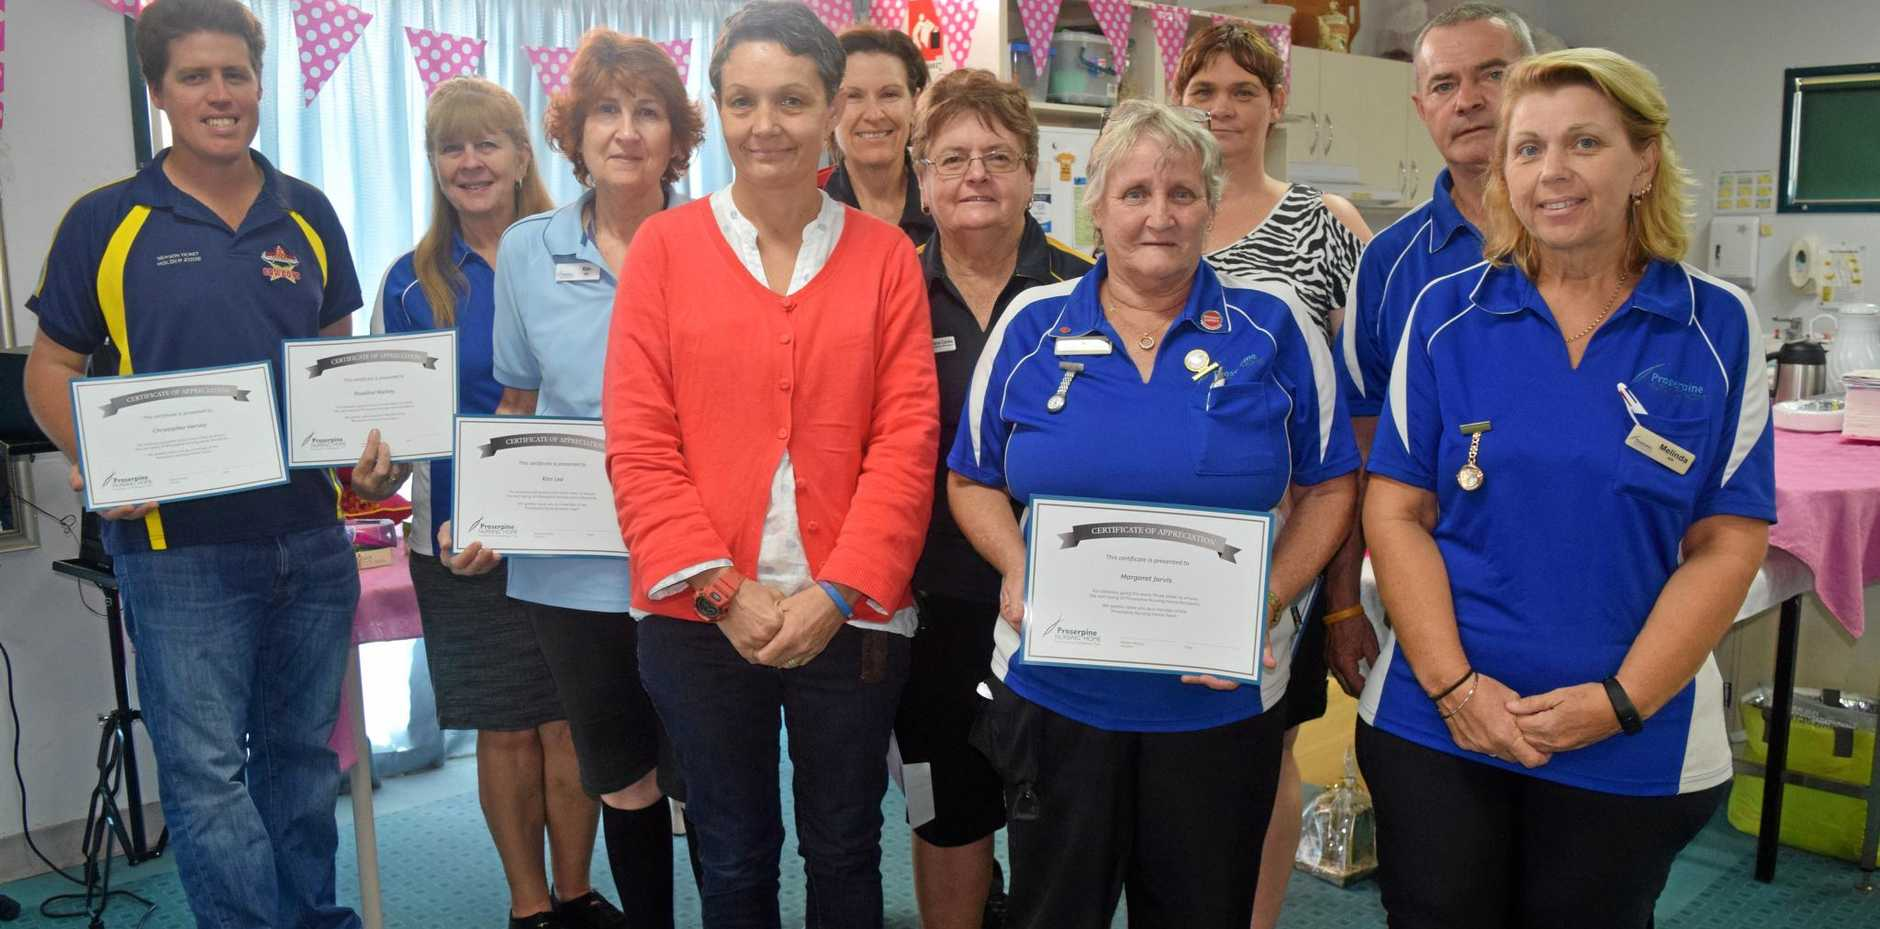 Chris Harvey, Roslyn Mackay, Kim Lee, Renee Croxford, Colleen Williams, Faylene Cooke, Margaret Jarvis, Lavinia Heard, Melinda Small and Garry Smith received recognition on International Nurse's Day.